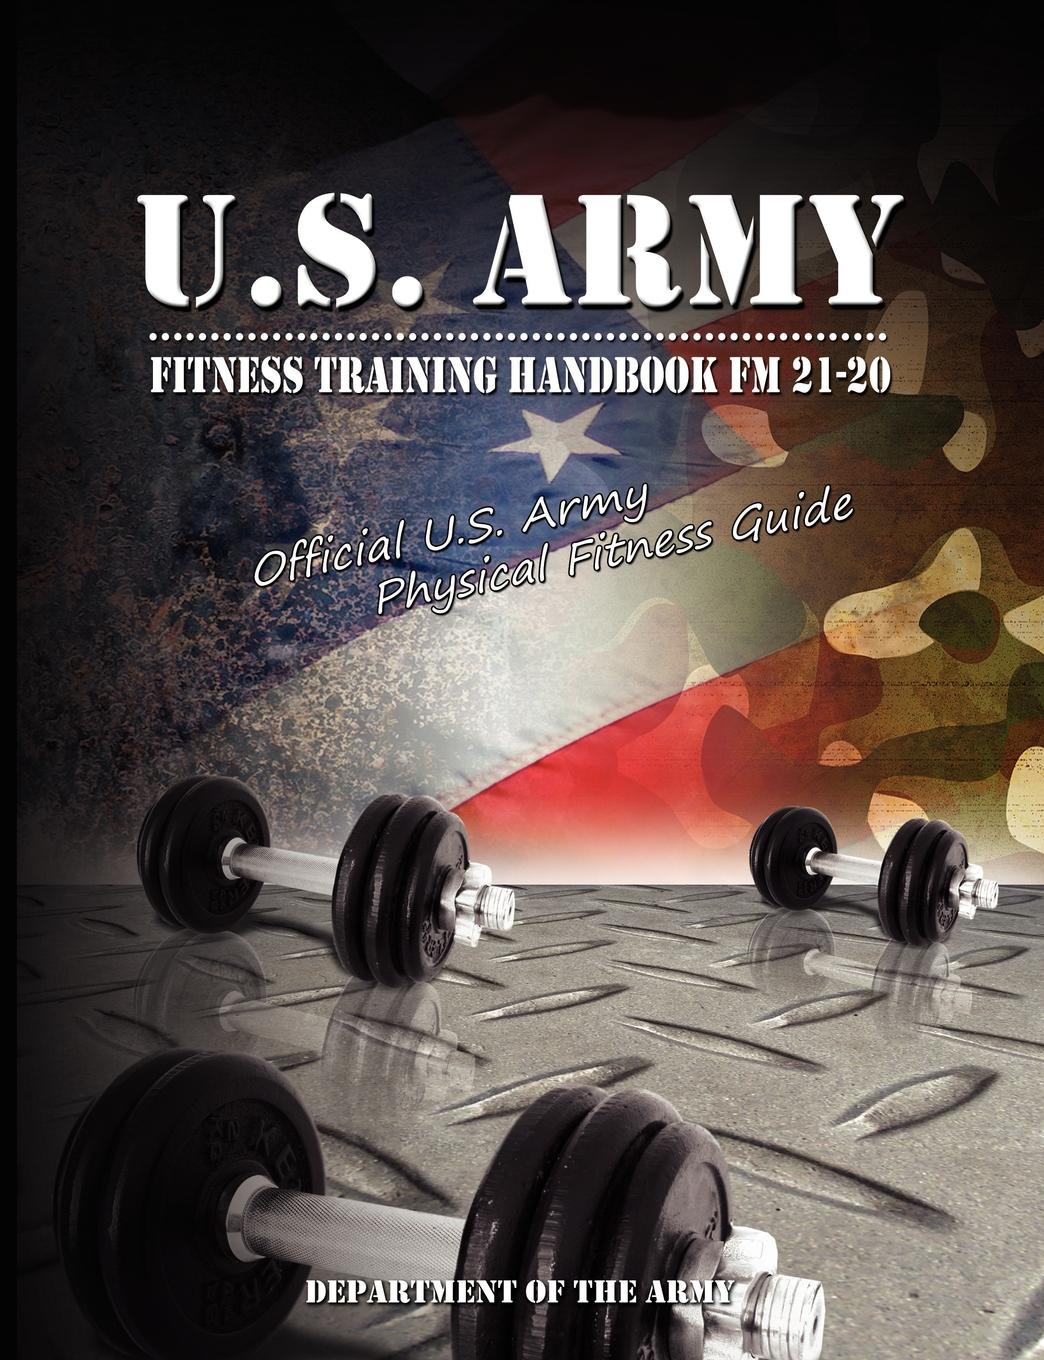 U S Dept of the Army, Of The Army Department of the Army, Department of the Army U.S. Army Fitness Training Handbook FM 21-20. Official U.S. Army Physical Fitness Guide leadership center for army and us army the u s army leadership field manual fm 22 100